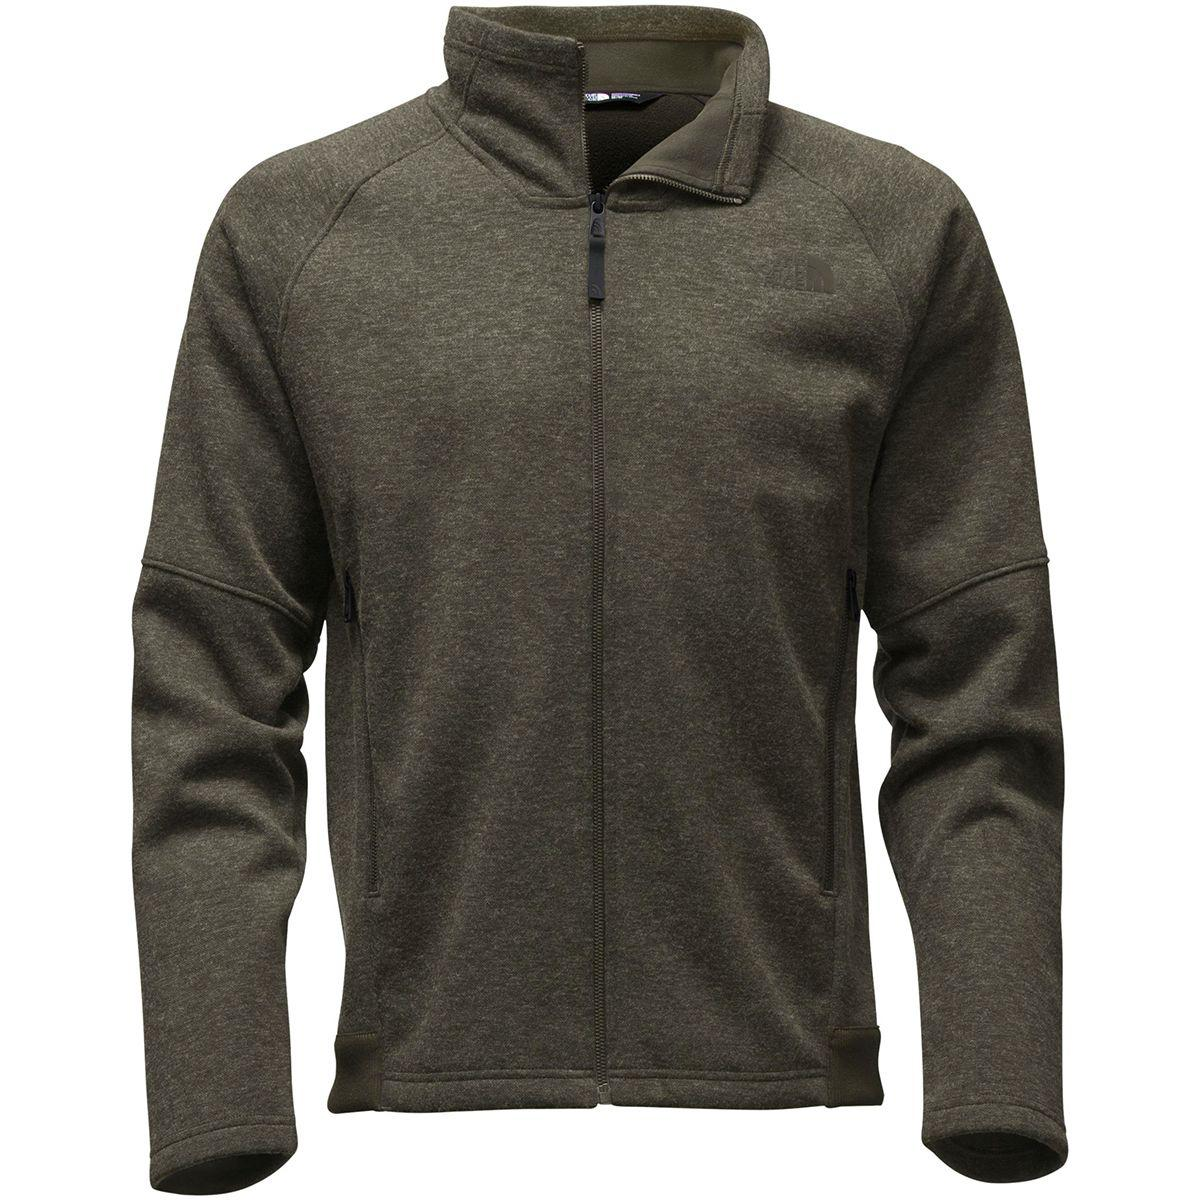 Lyst - The North Face Far Northern Full-zip Fleece Jacket in Green ... 5fcfb772f